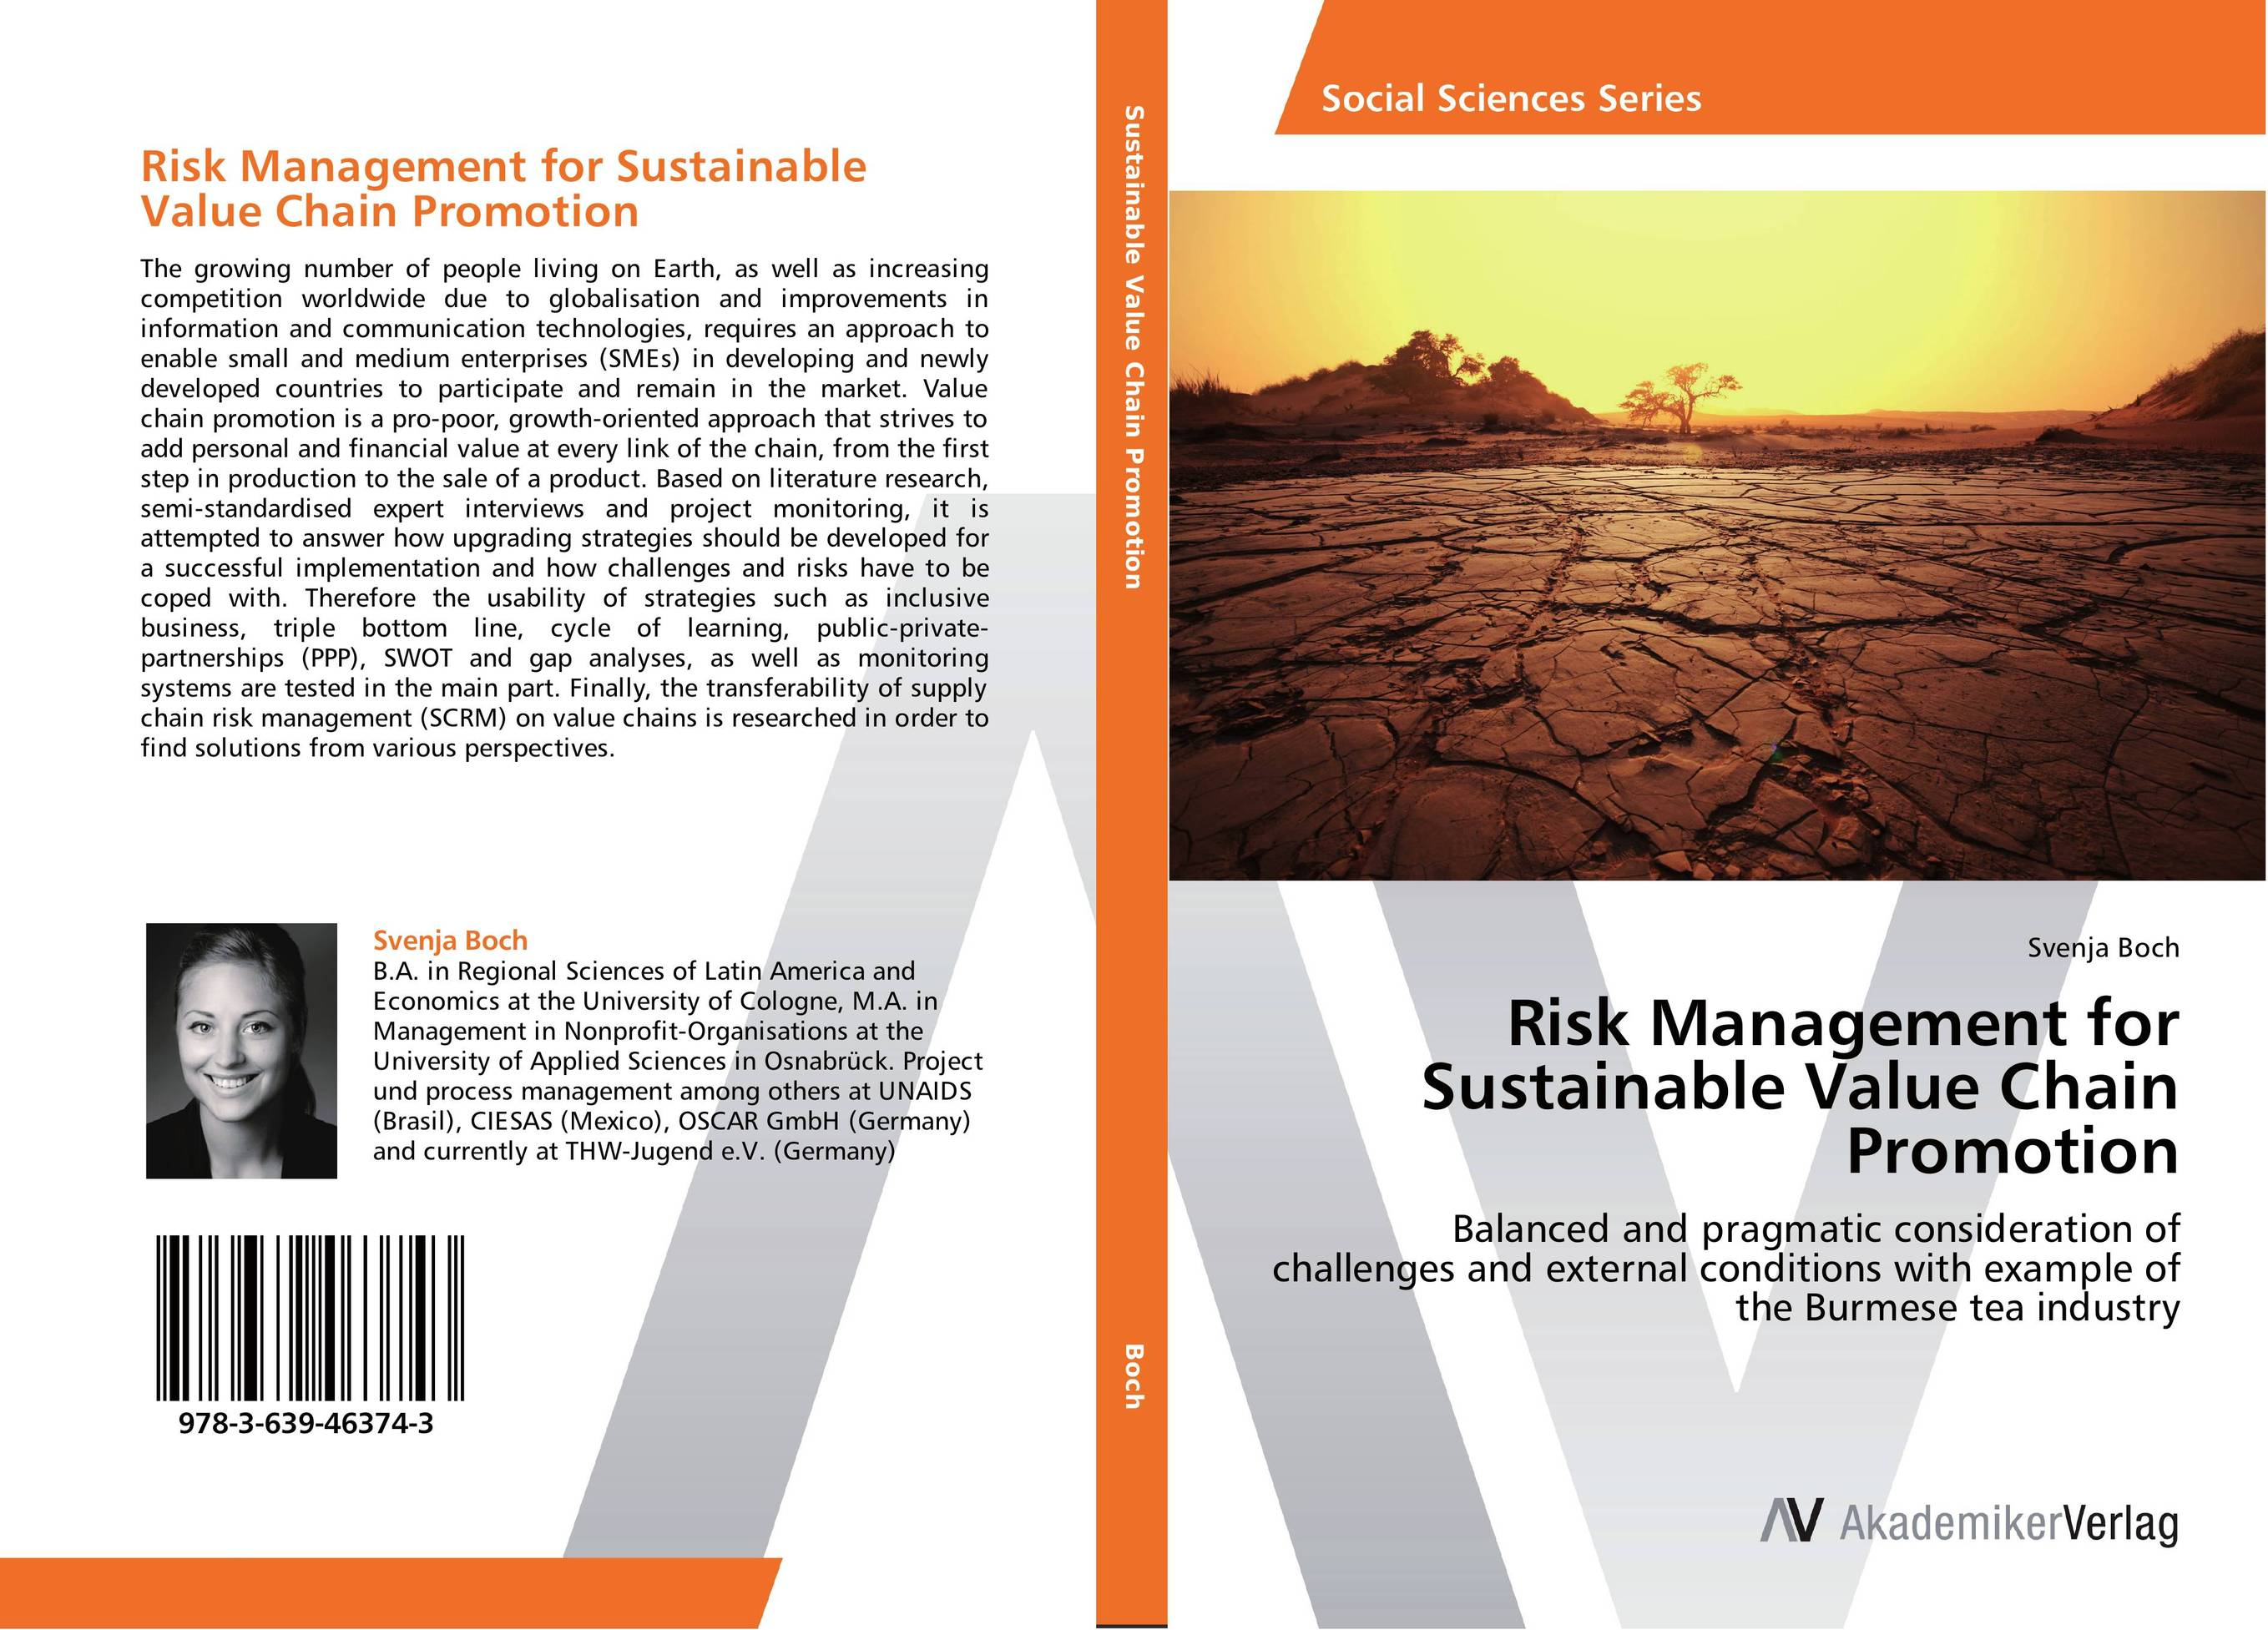 Risk Management for Sustainable Value Chain Promotion sim segal corporate value of enterprise risk management the next step in business management